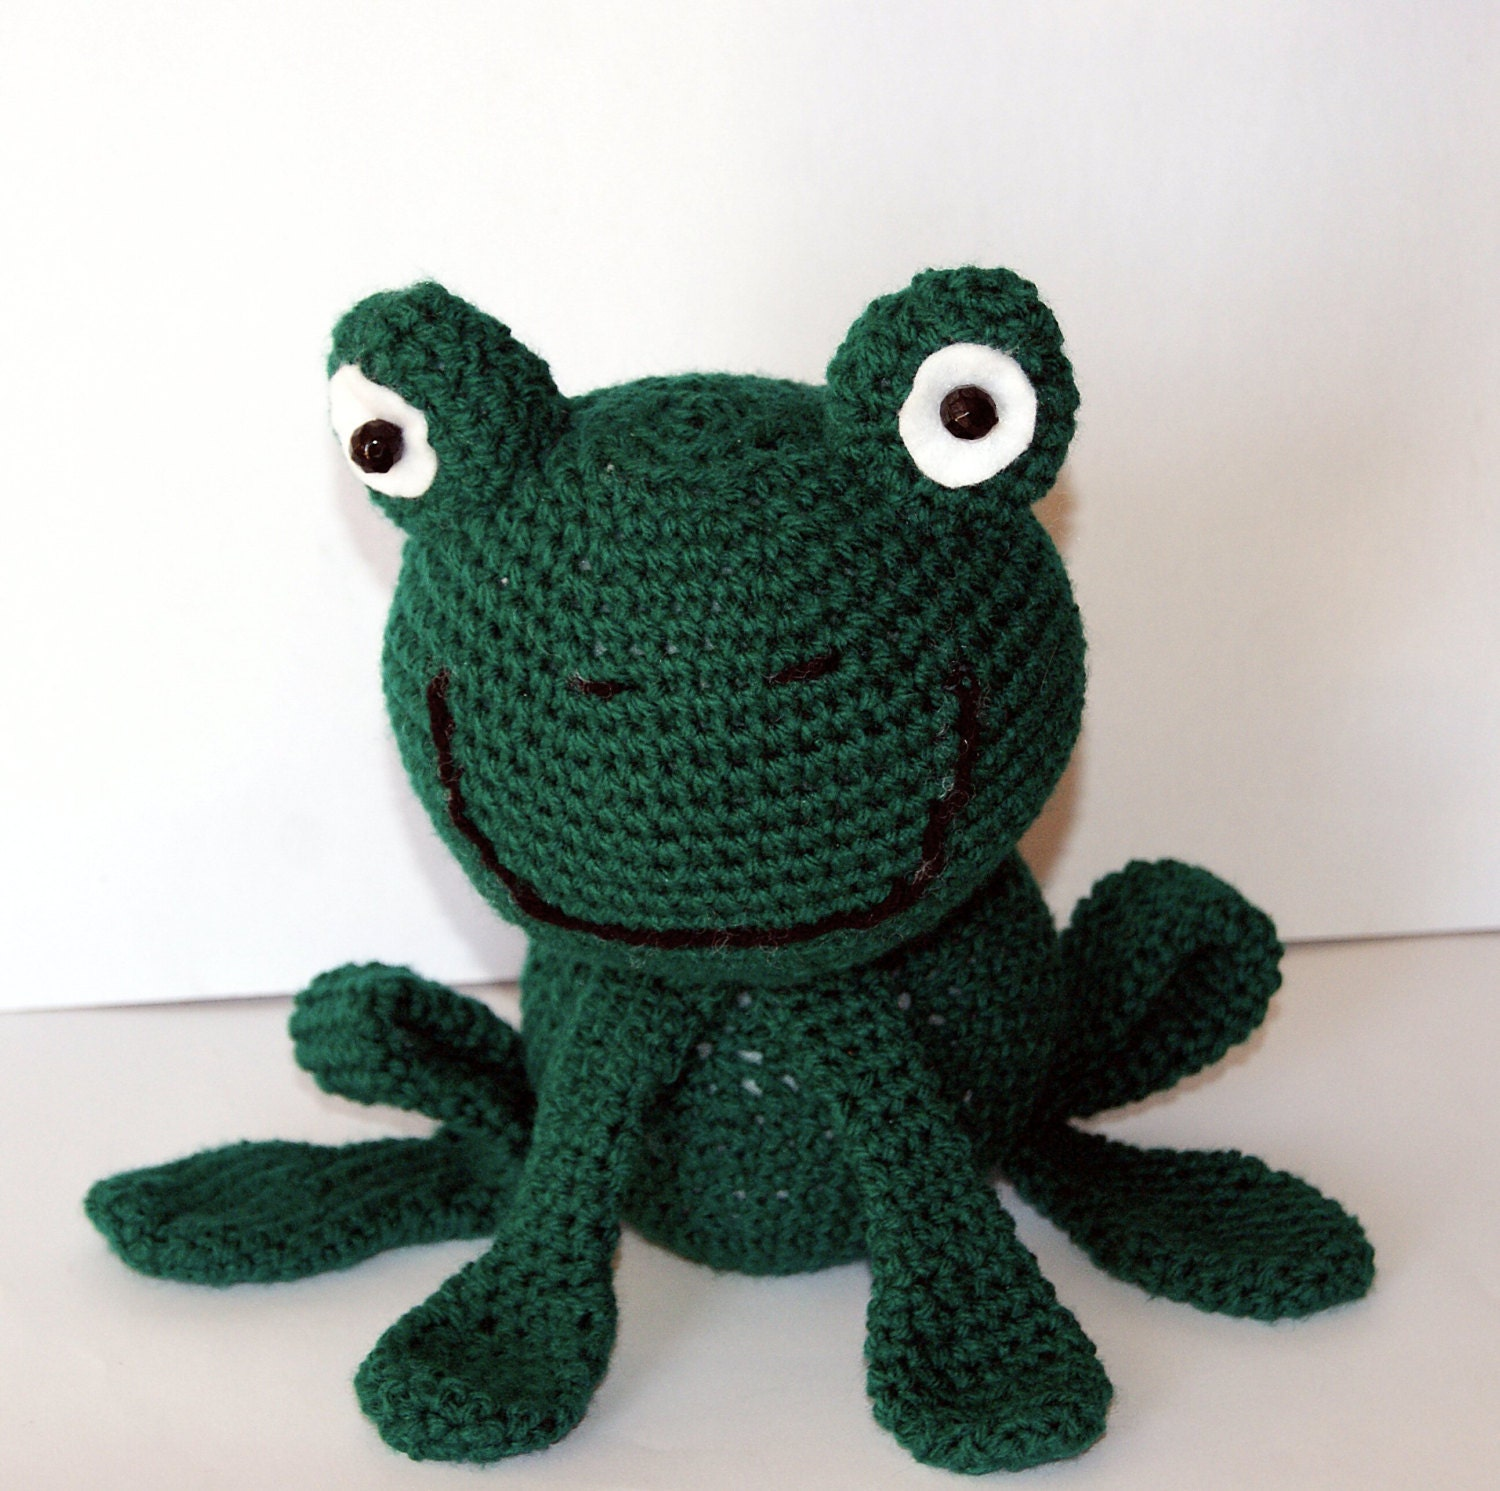 Amigurumi Frog Doll : Etsy - Your place to buy and sell all things handmade ...